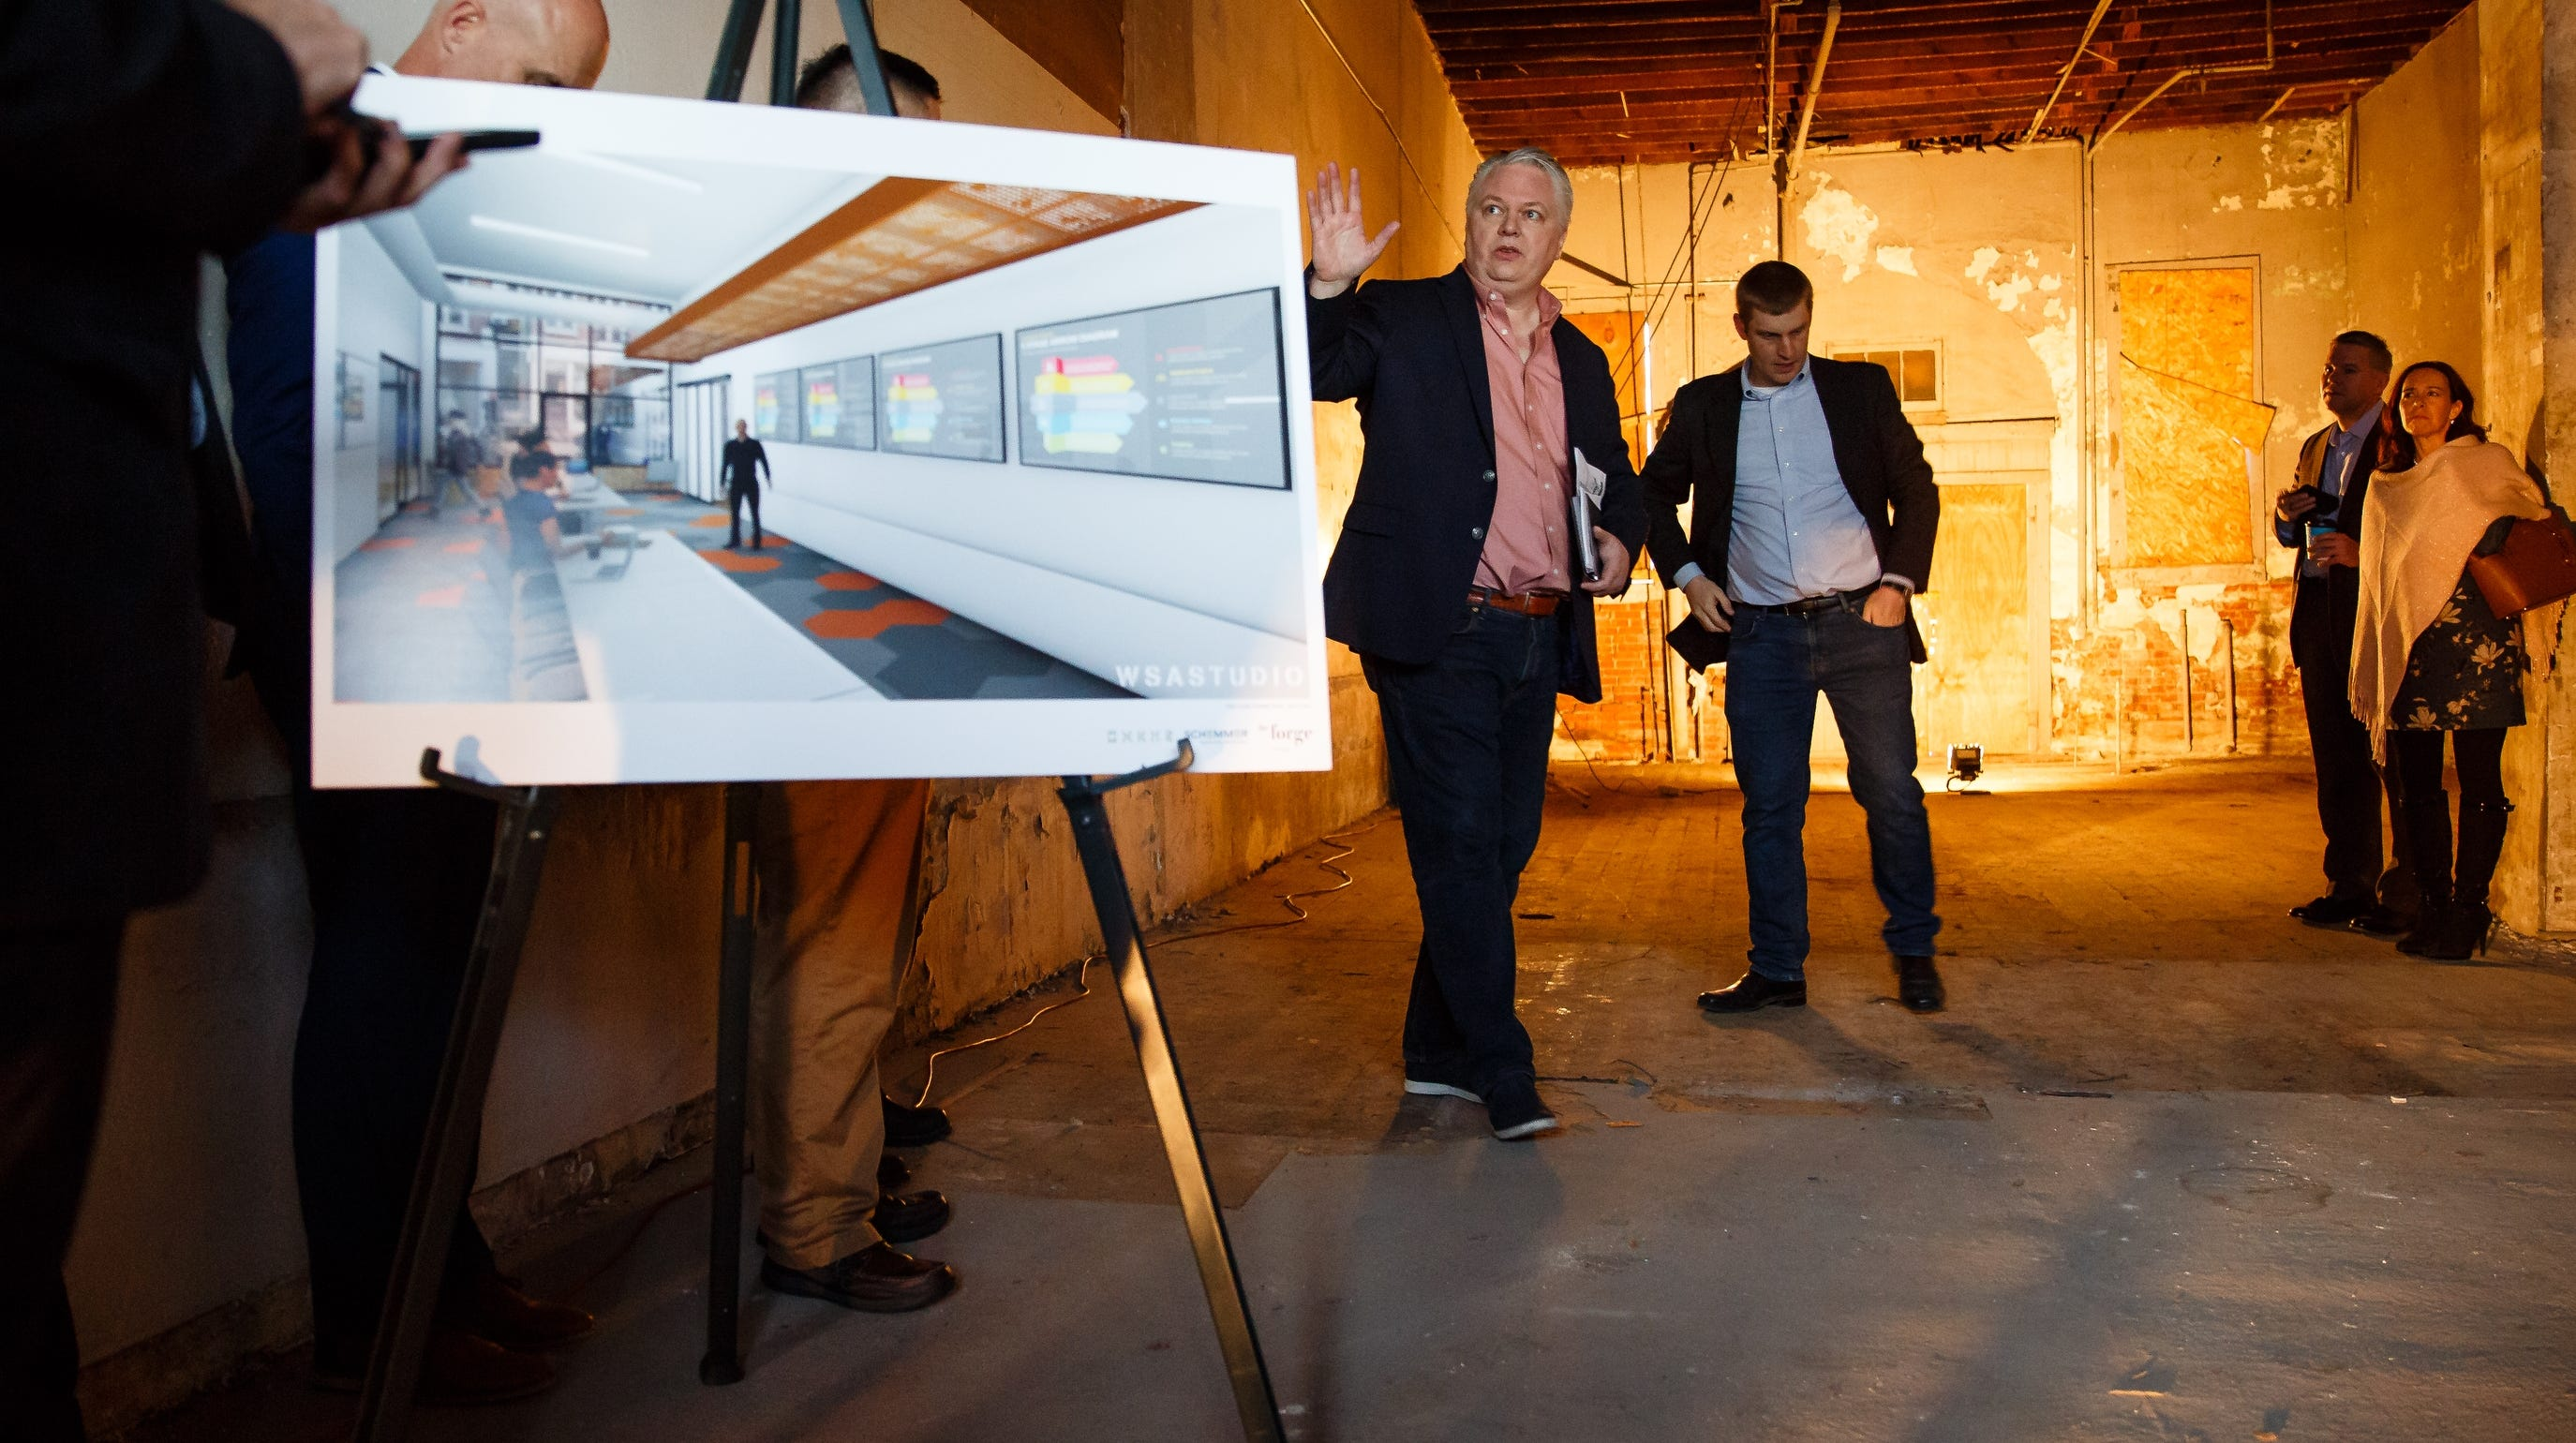 Linc Kroeger with Pillar Technology, center, and Mechanical engineer Chris Deal show off a rendering to a crowd, including Silicon Valley leaders who came to see the building that will eventually house Pillar Technology on Saturday, Dec. 8, 2018, in Jefferson.